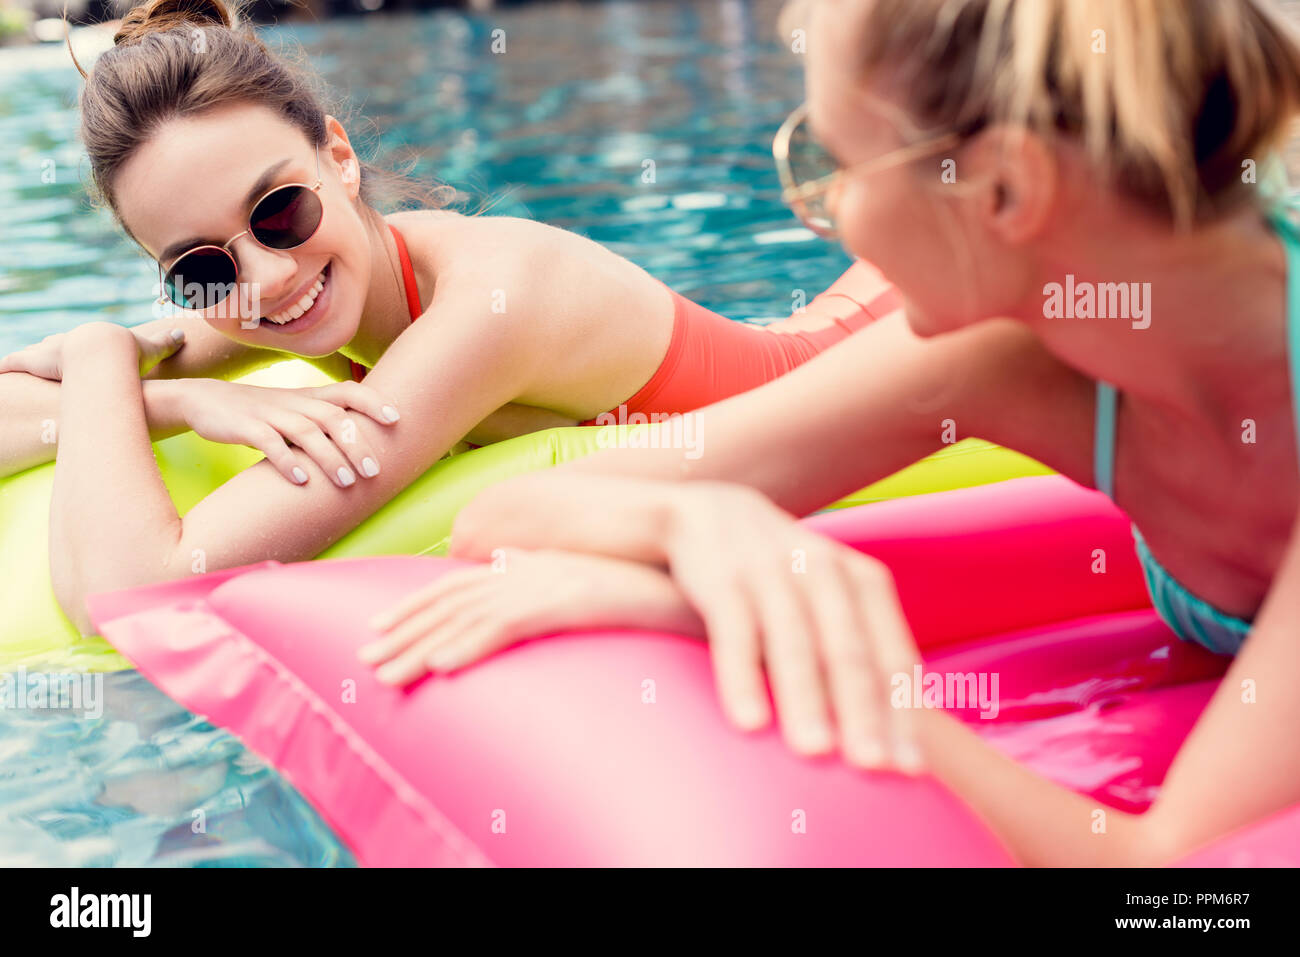 attractive young women lying on inflatable mattresses in swimming pool - Stock Image